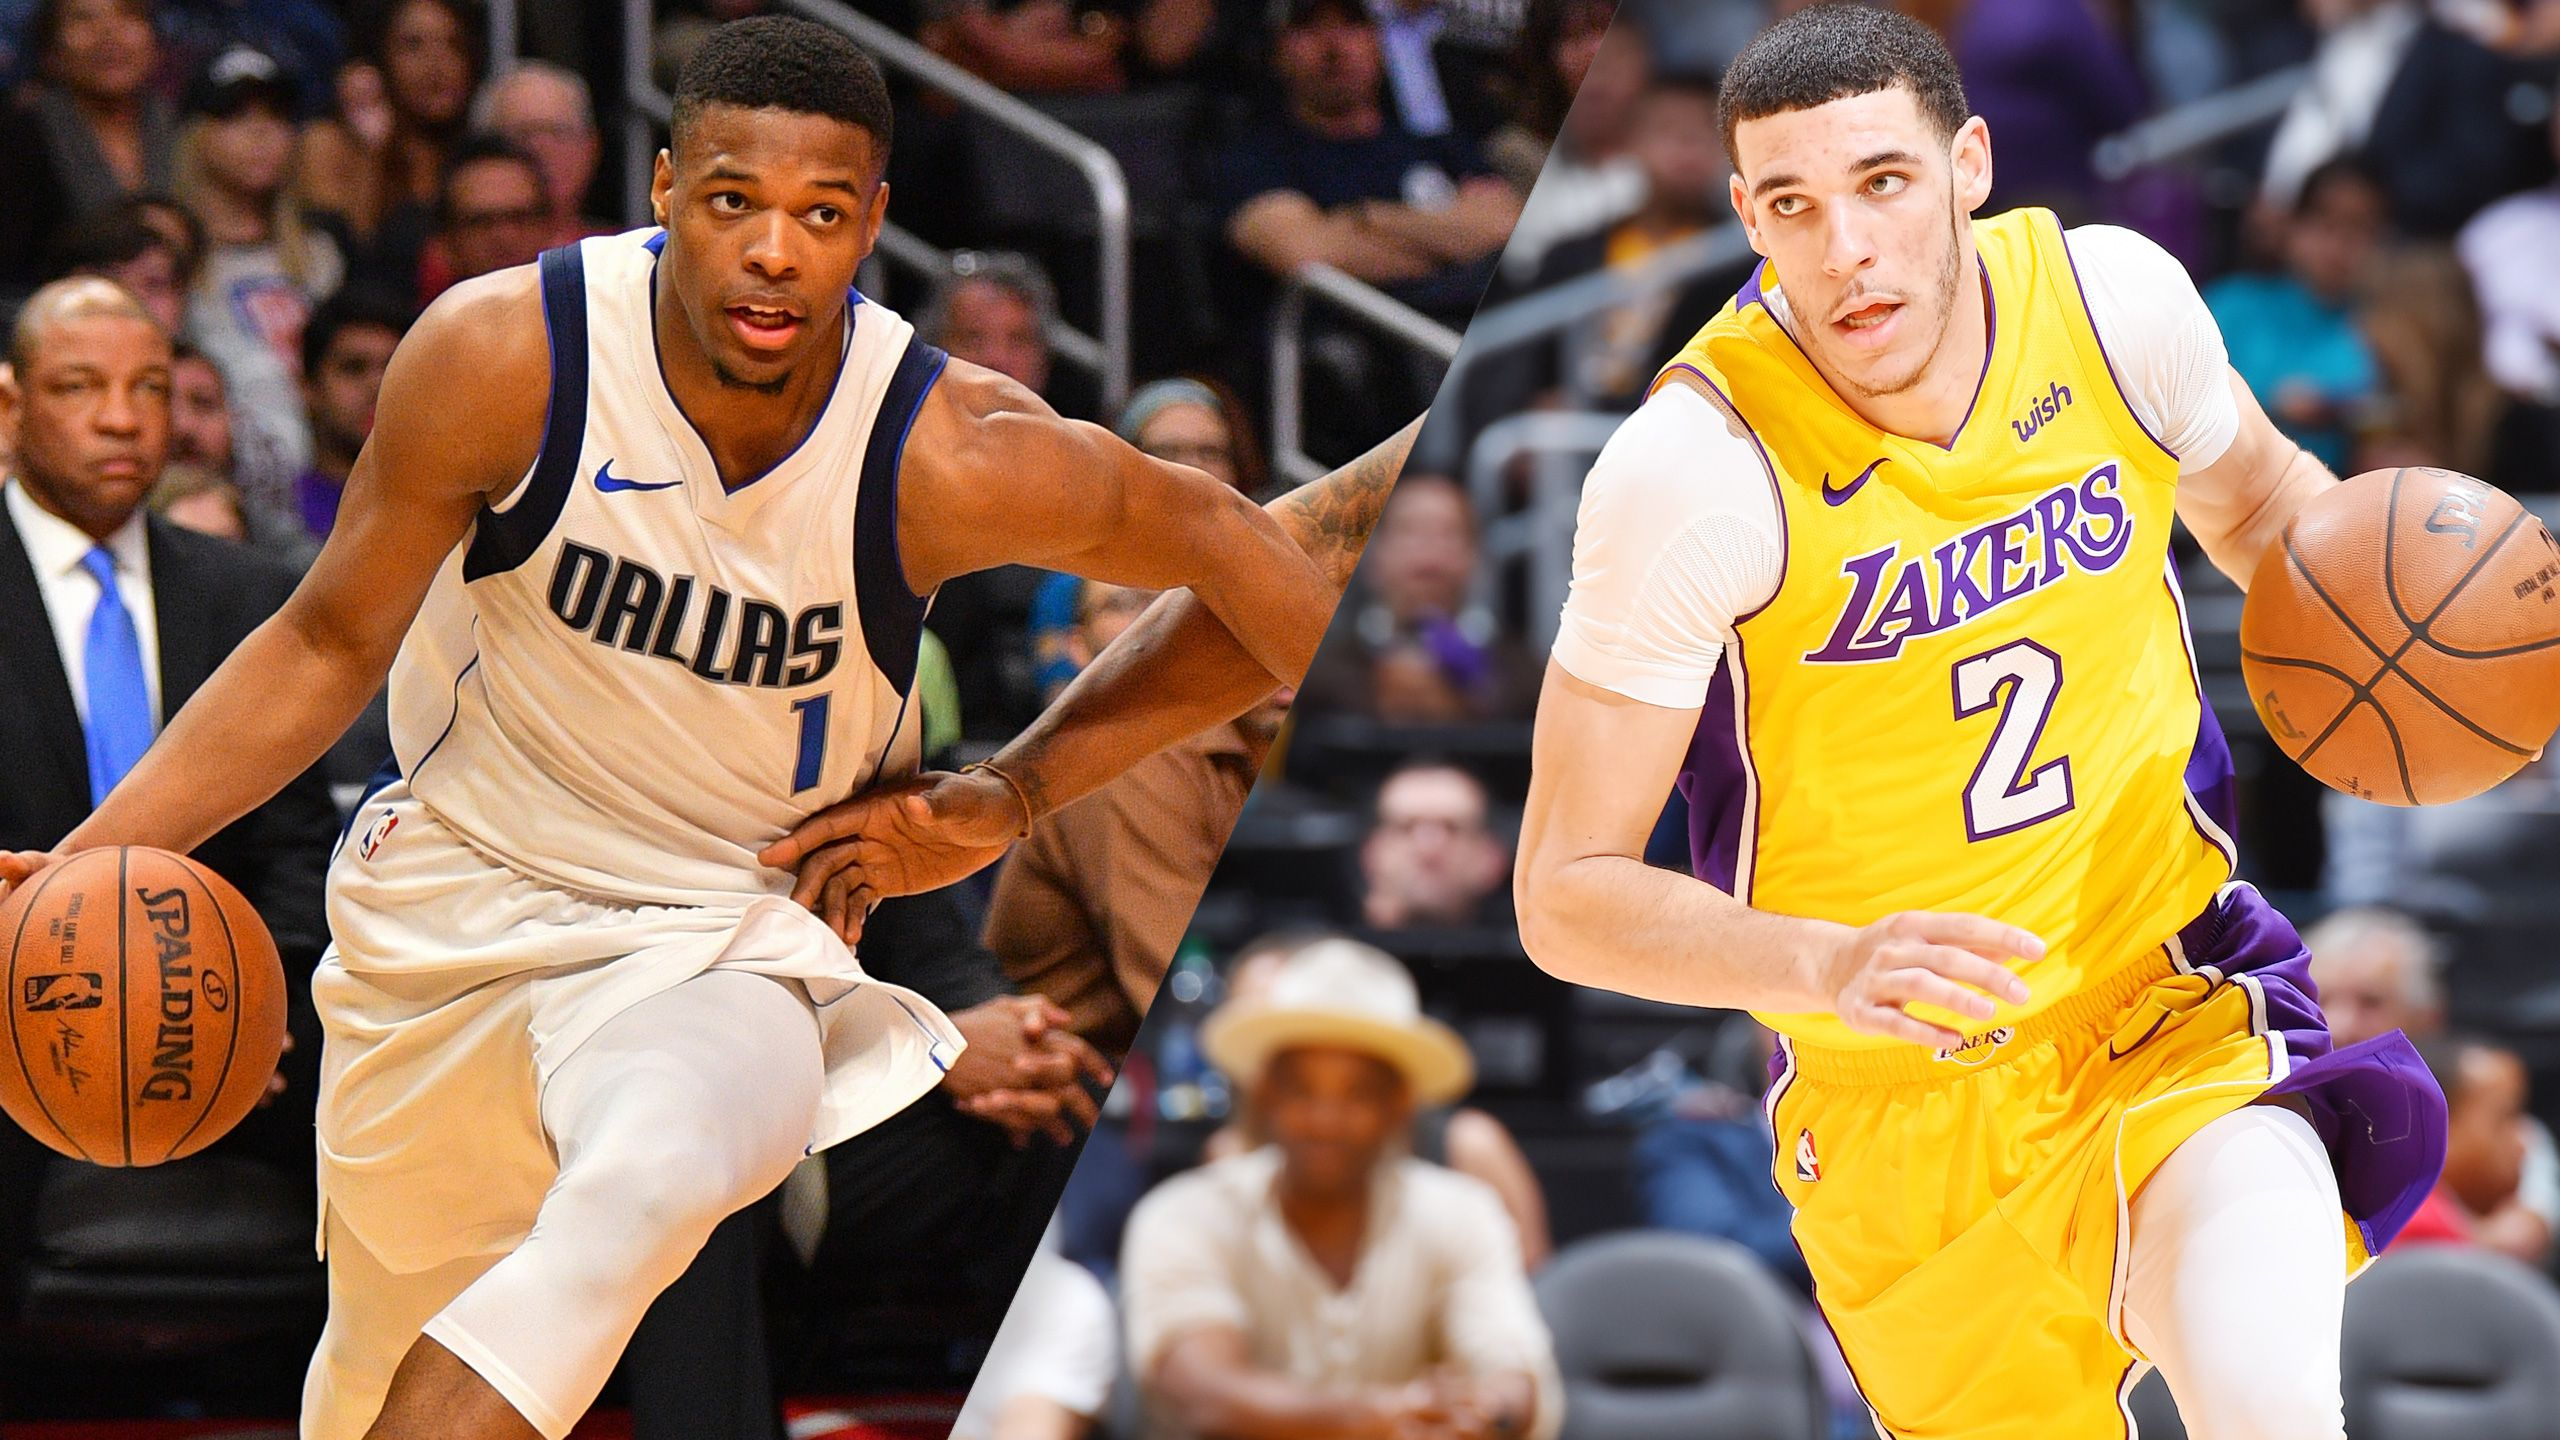 Dallas Mavericks vs. Los Angeles Lakers